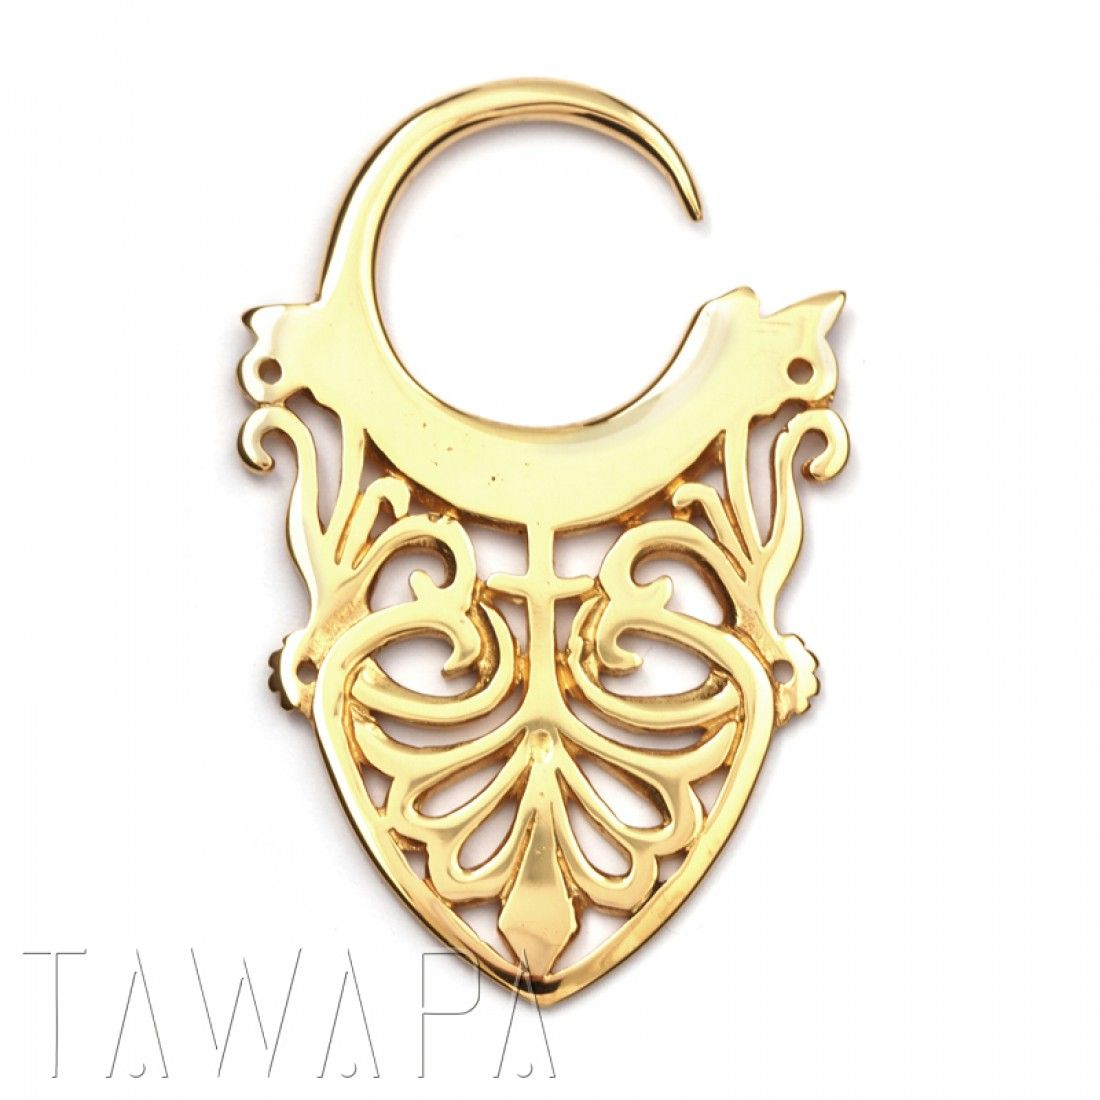 Belly button piercing needle size  Gold Plated Small Maori Damask  Piercings  Pinterest  Maori